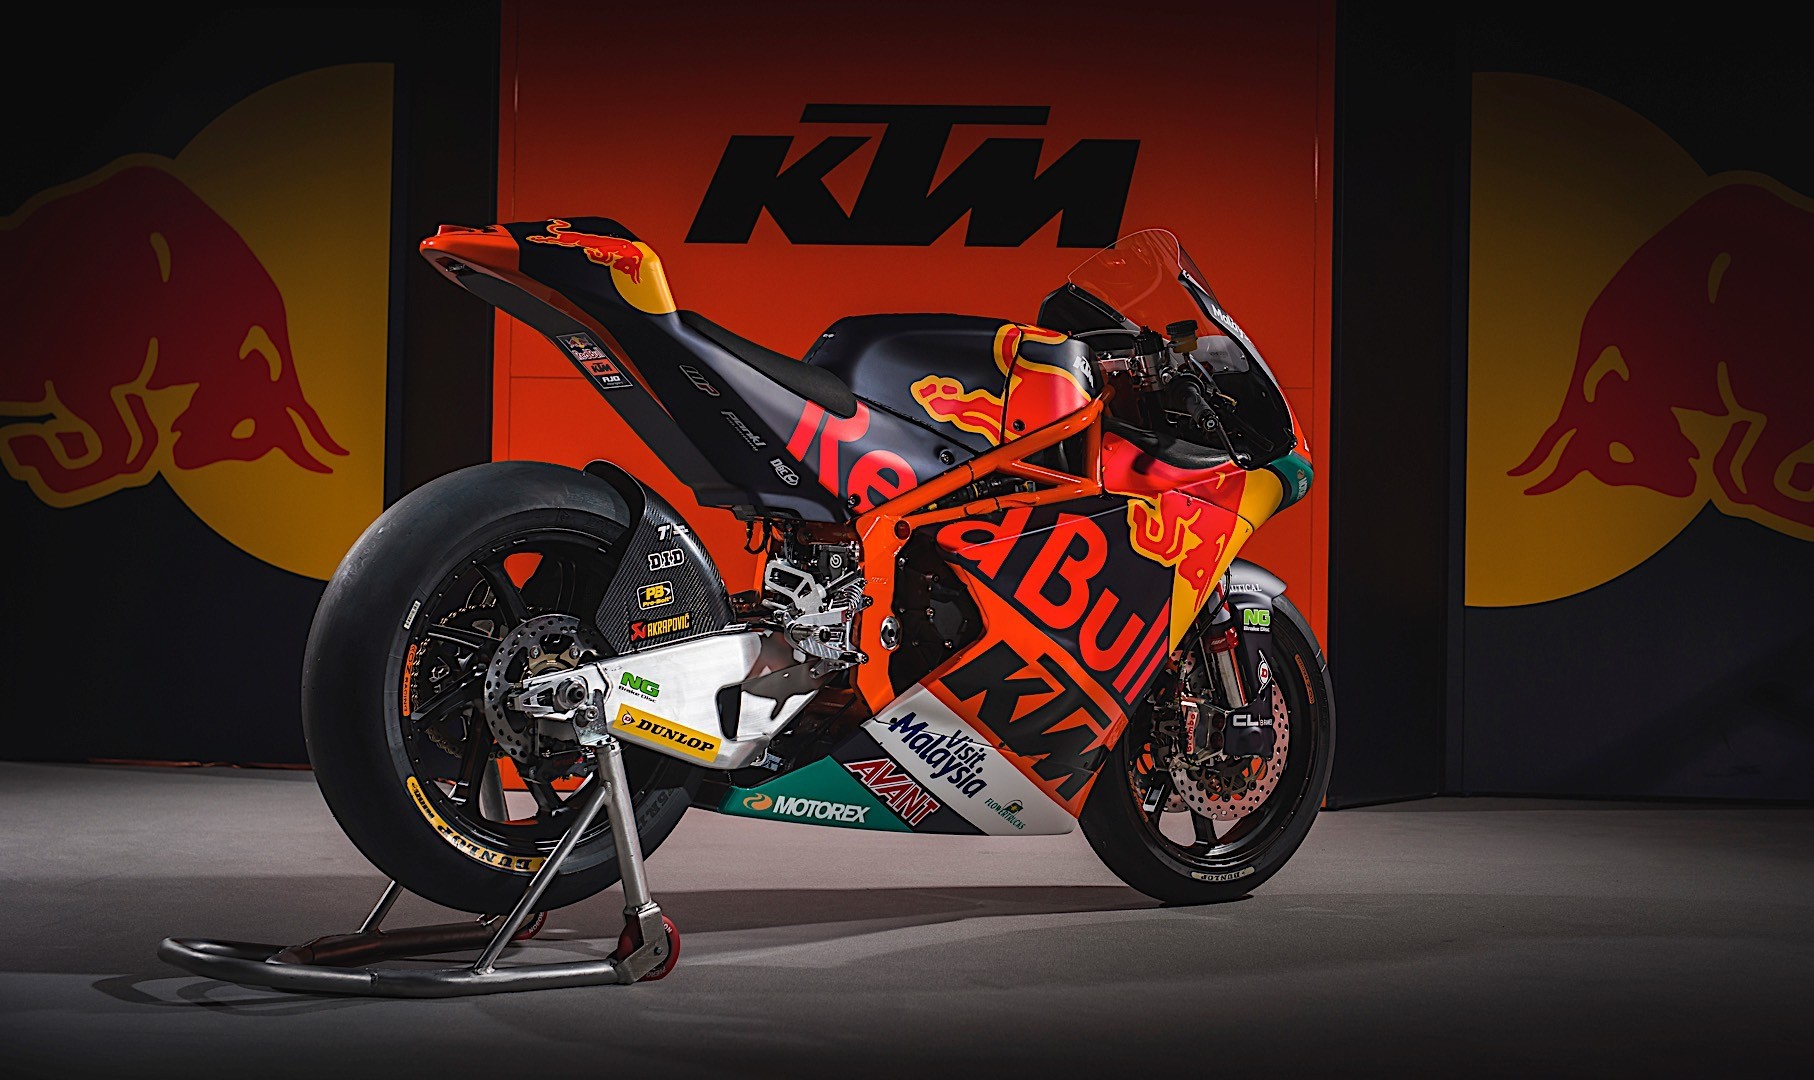 Ktm Motocross Wallpaper Hd This Is Red Bull Ktm S New Motogp Motorcycle In Final Form